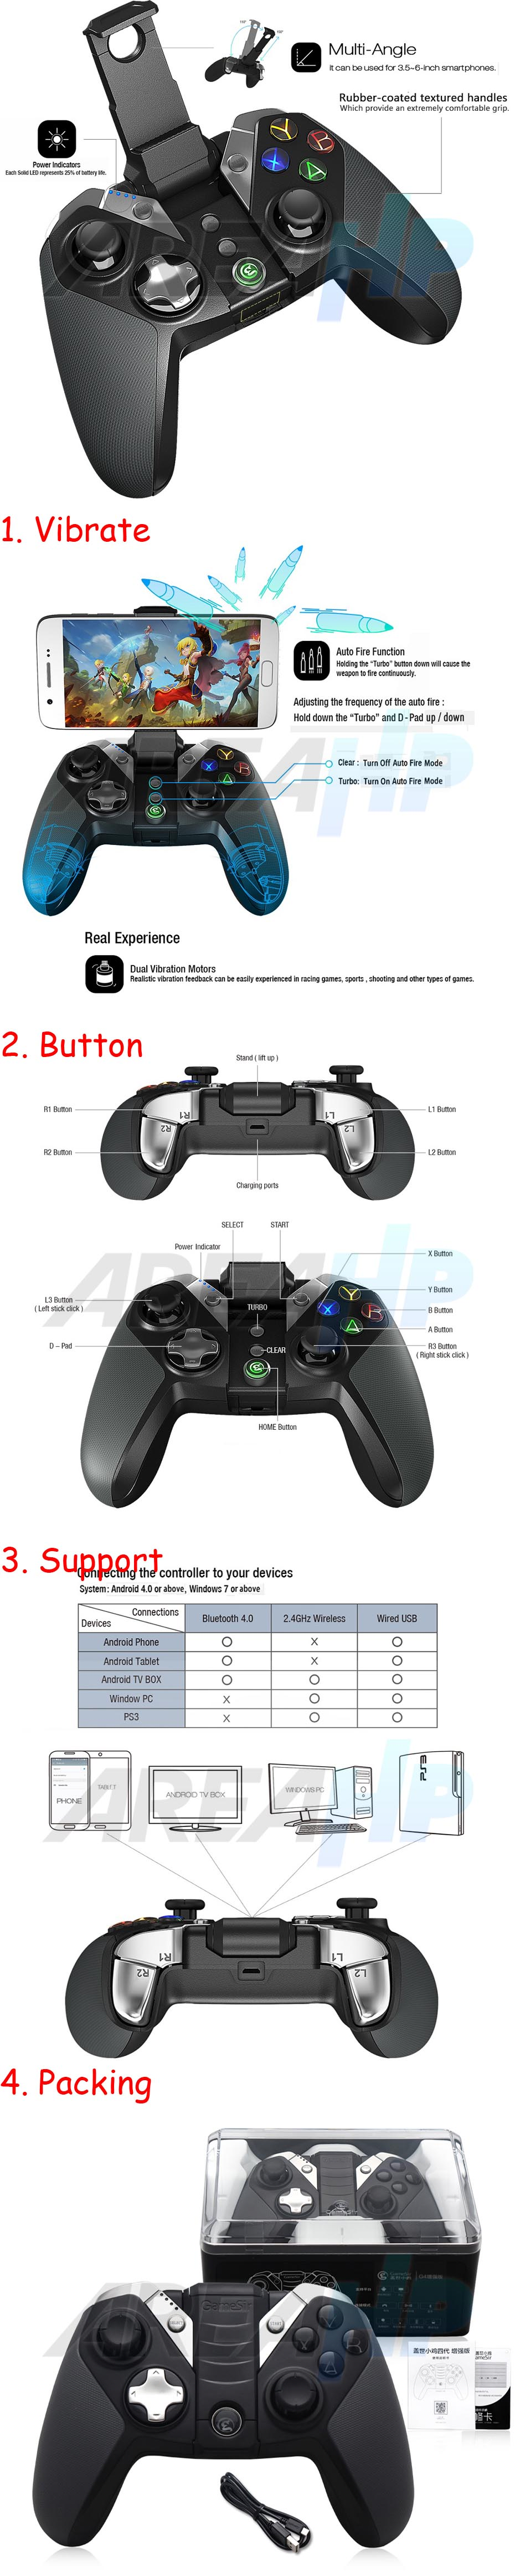 Gamesir Gamepad G4 Bluetooth with Backlight & Vibrate Overview